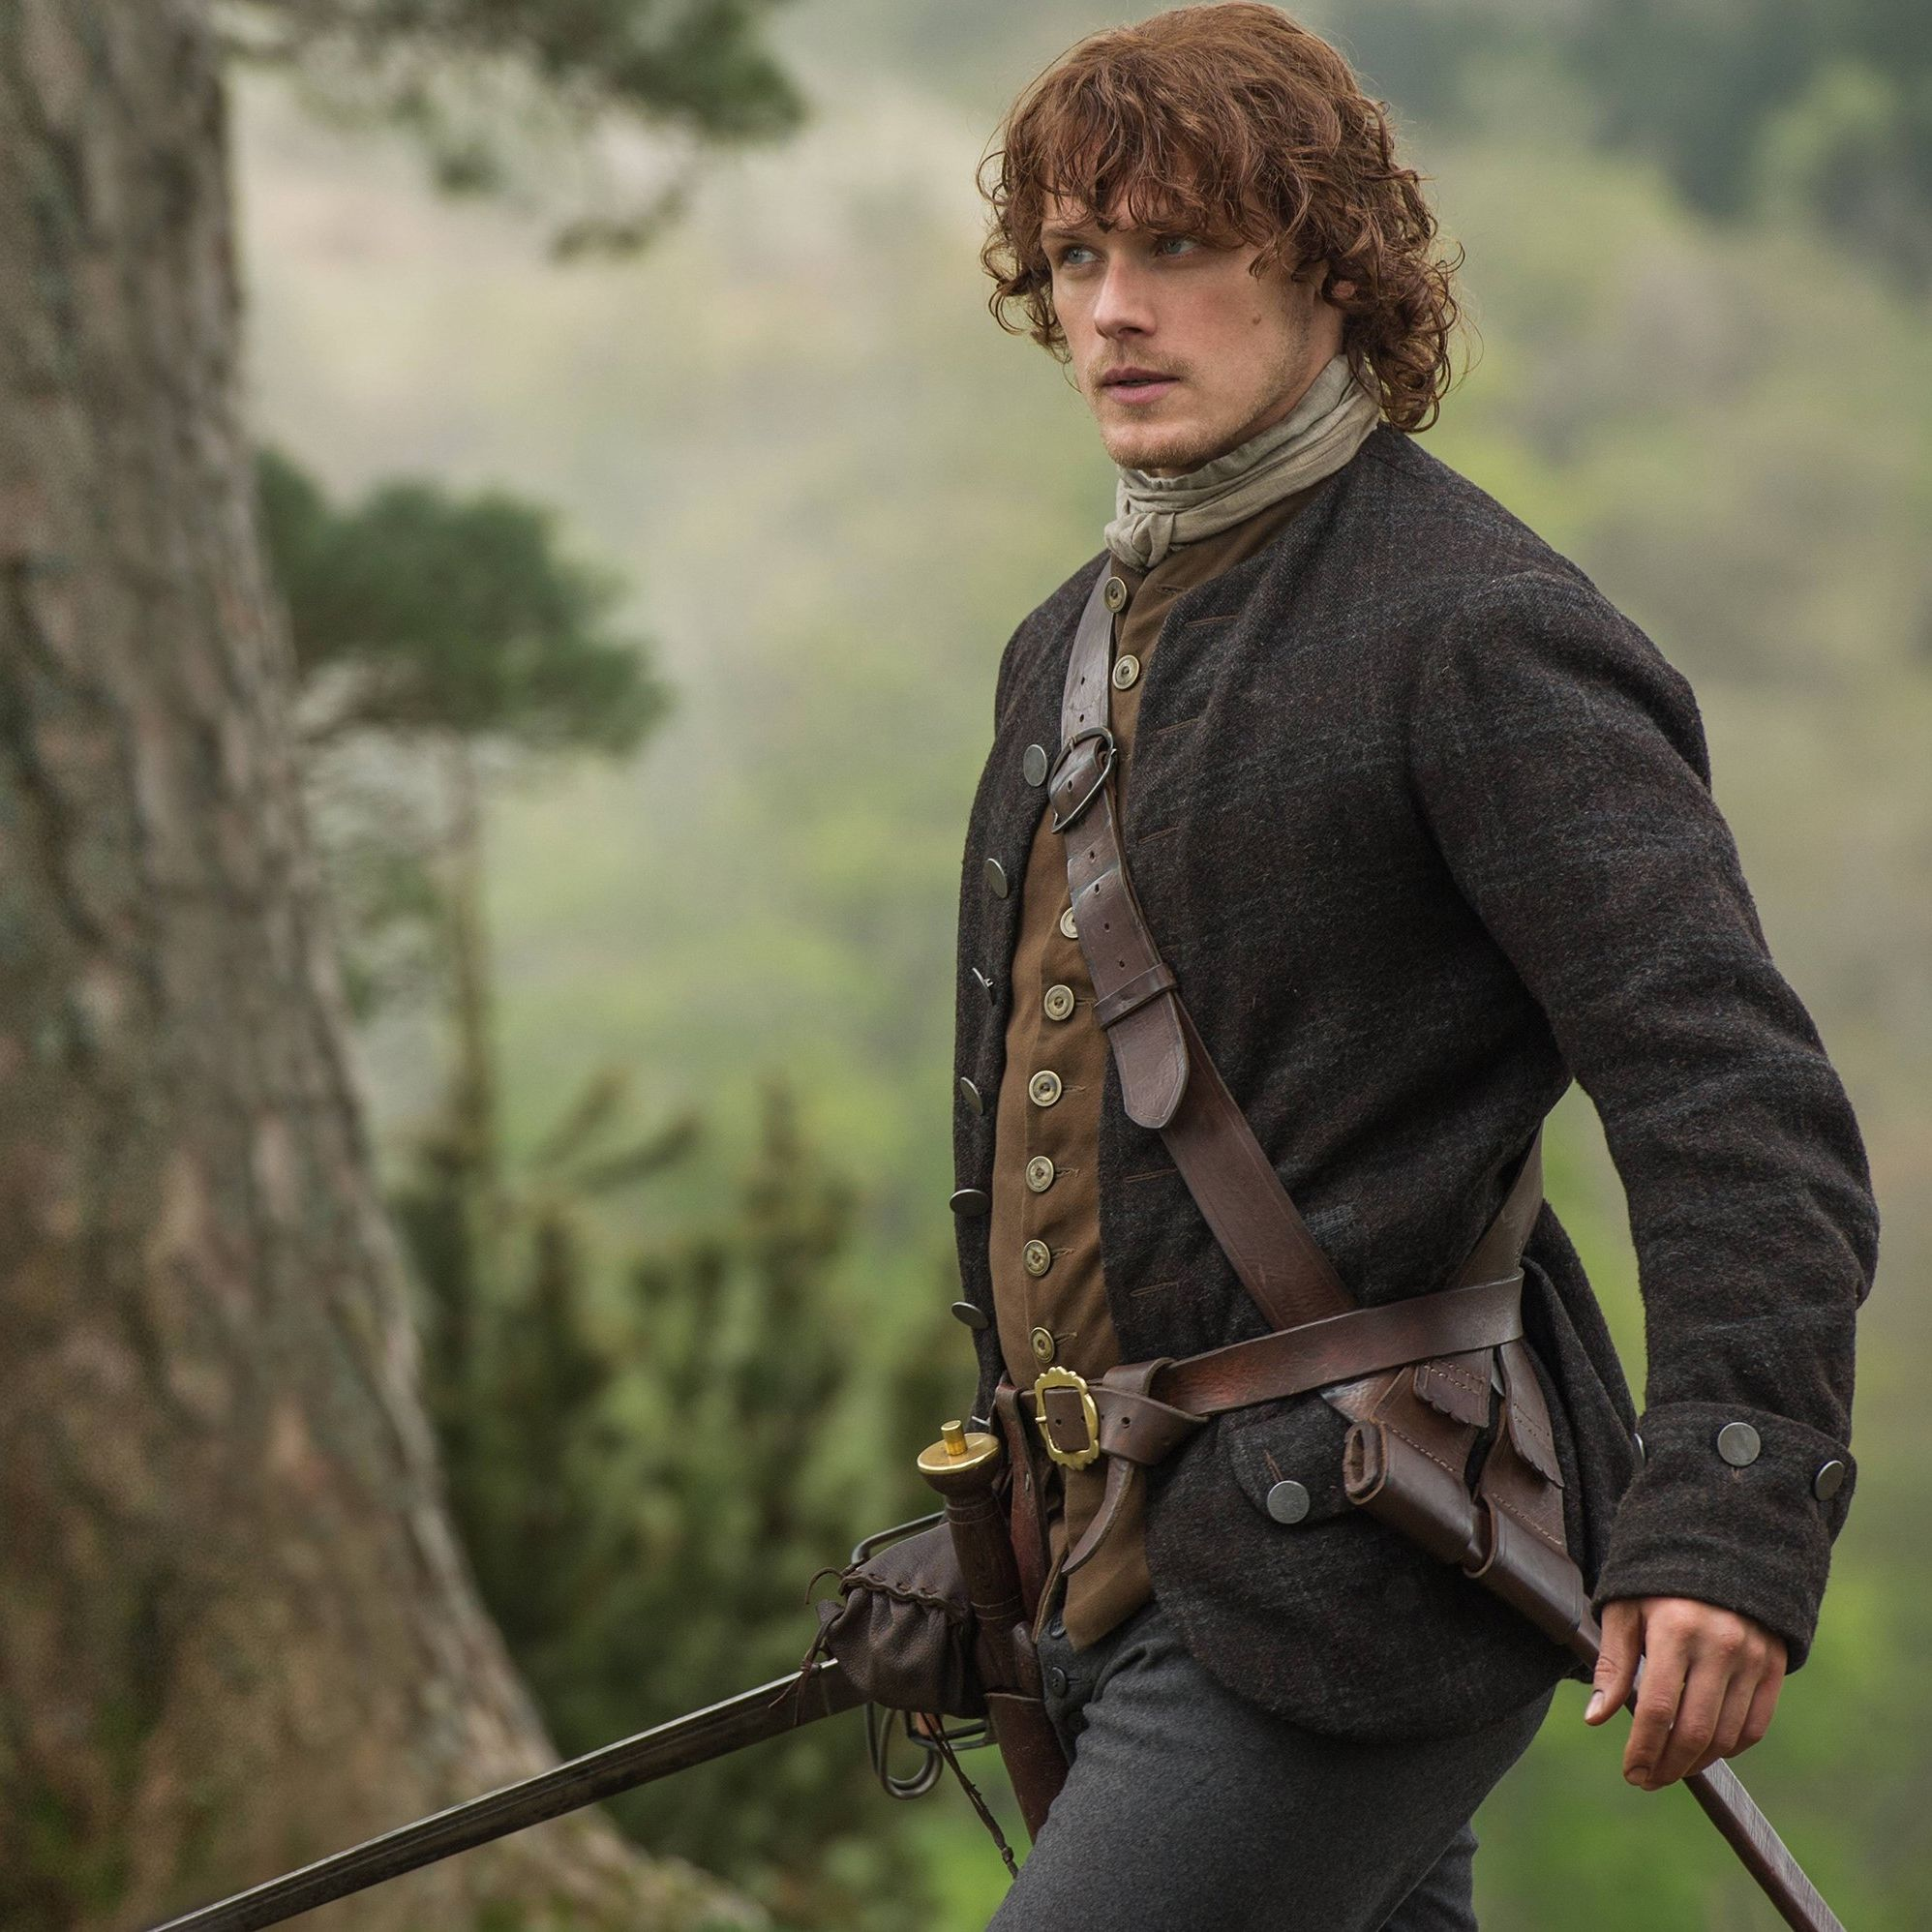 Jamie Fraser (Sam Heughan) in Outlander on Starz http://www.farfarawaysite.com/section/outlander/gallery13/gallery.htm